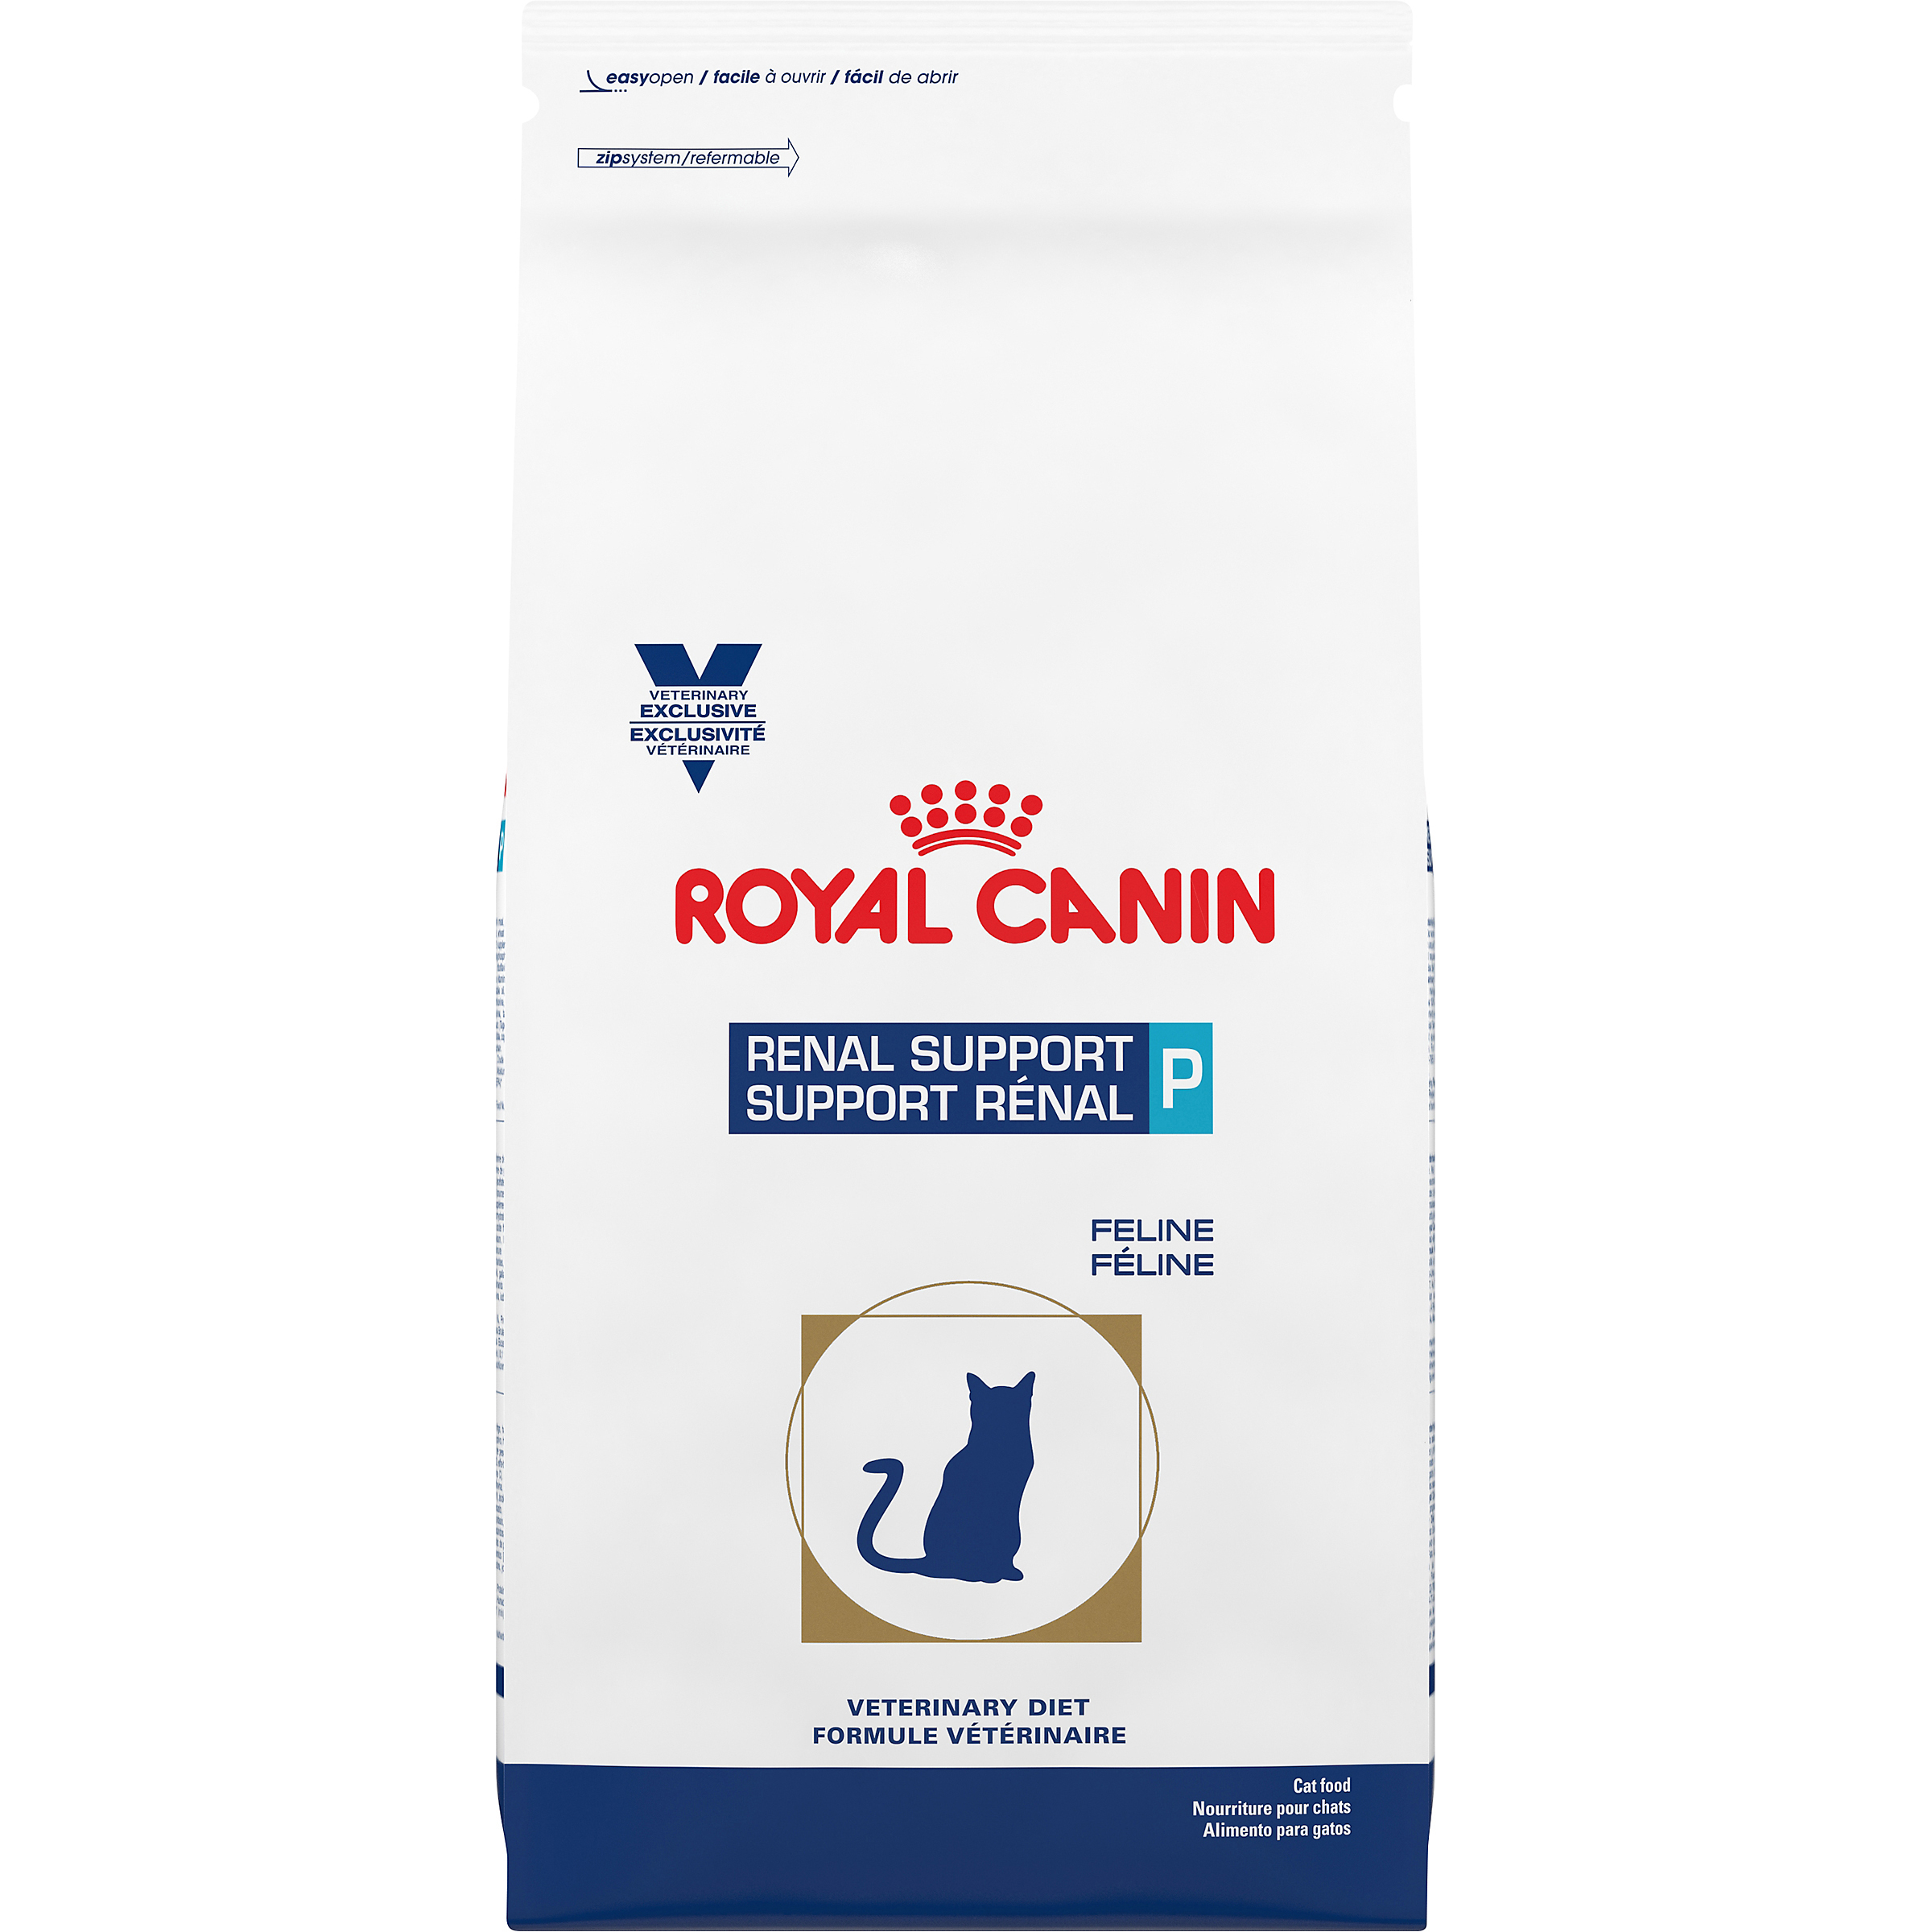 Royal Canin Veterinary Diet Feline Renal Support P Dry Cat Food